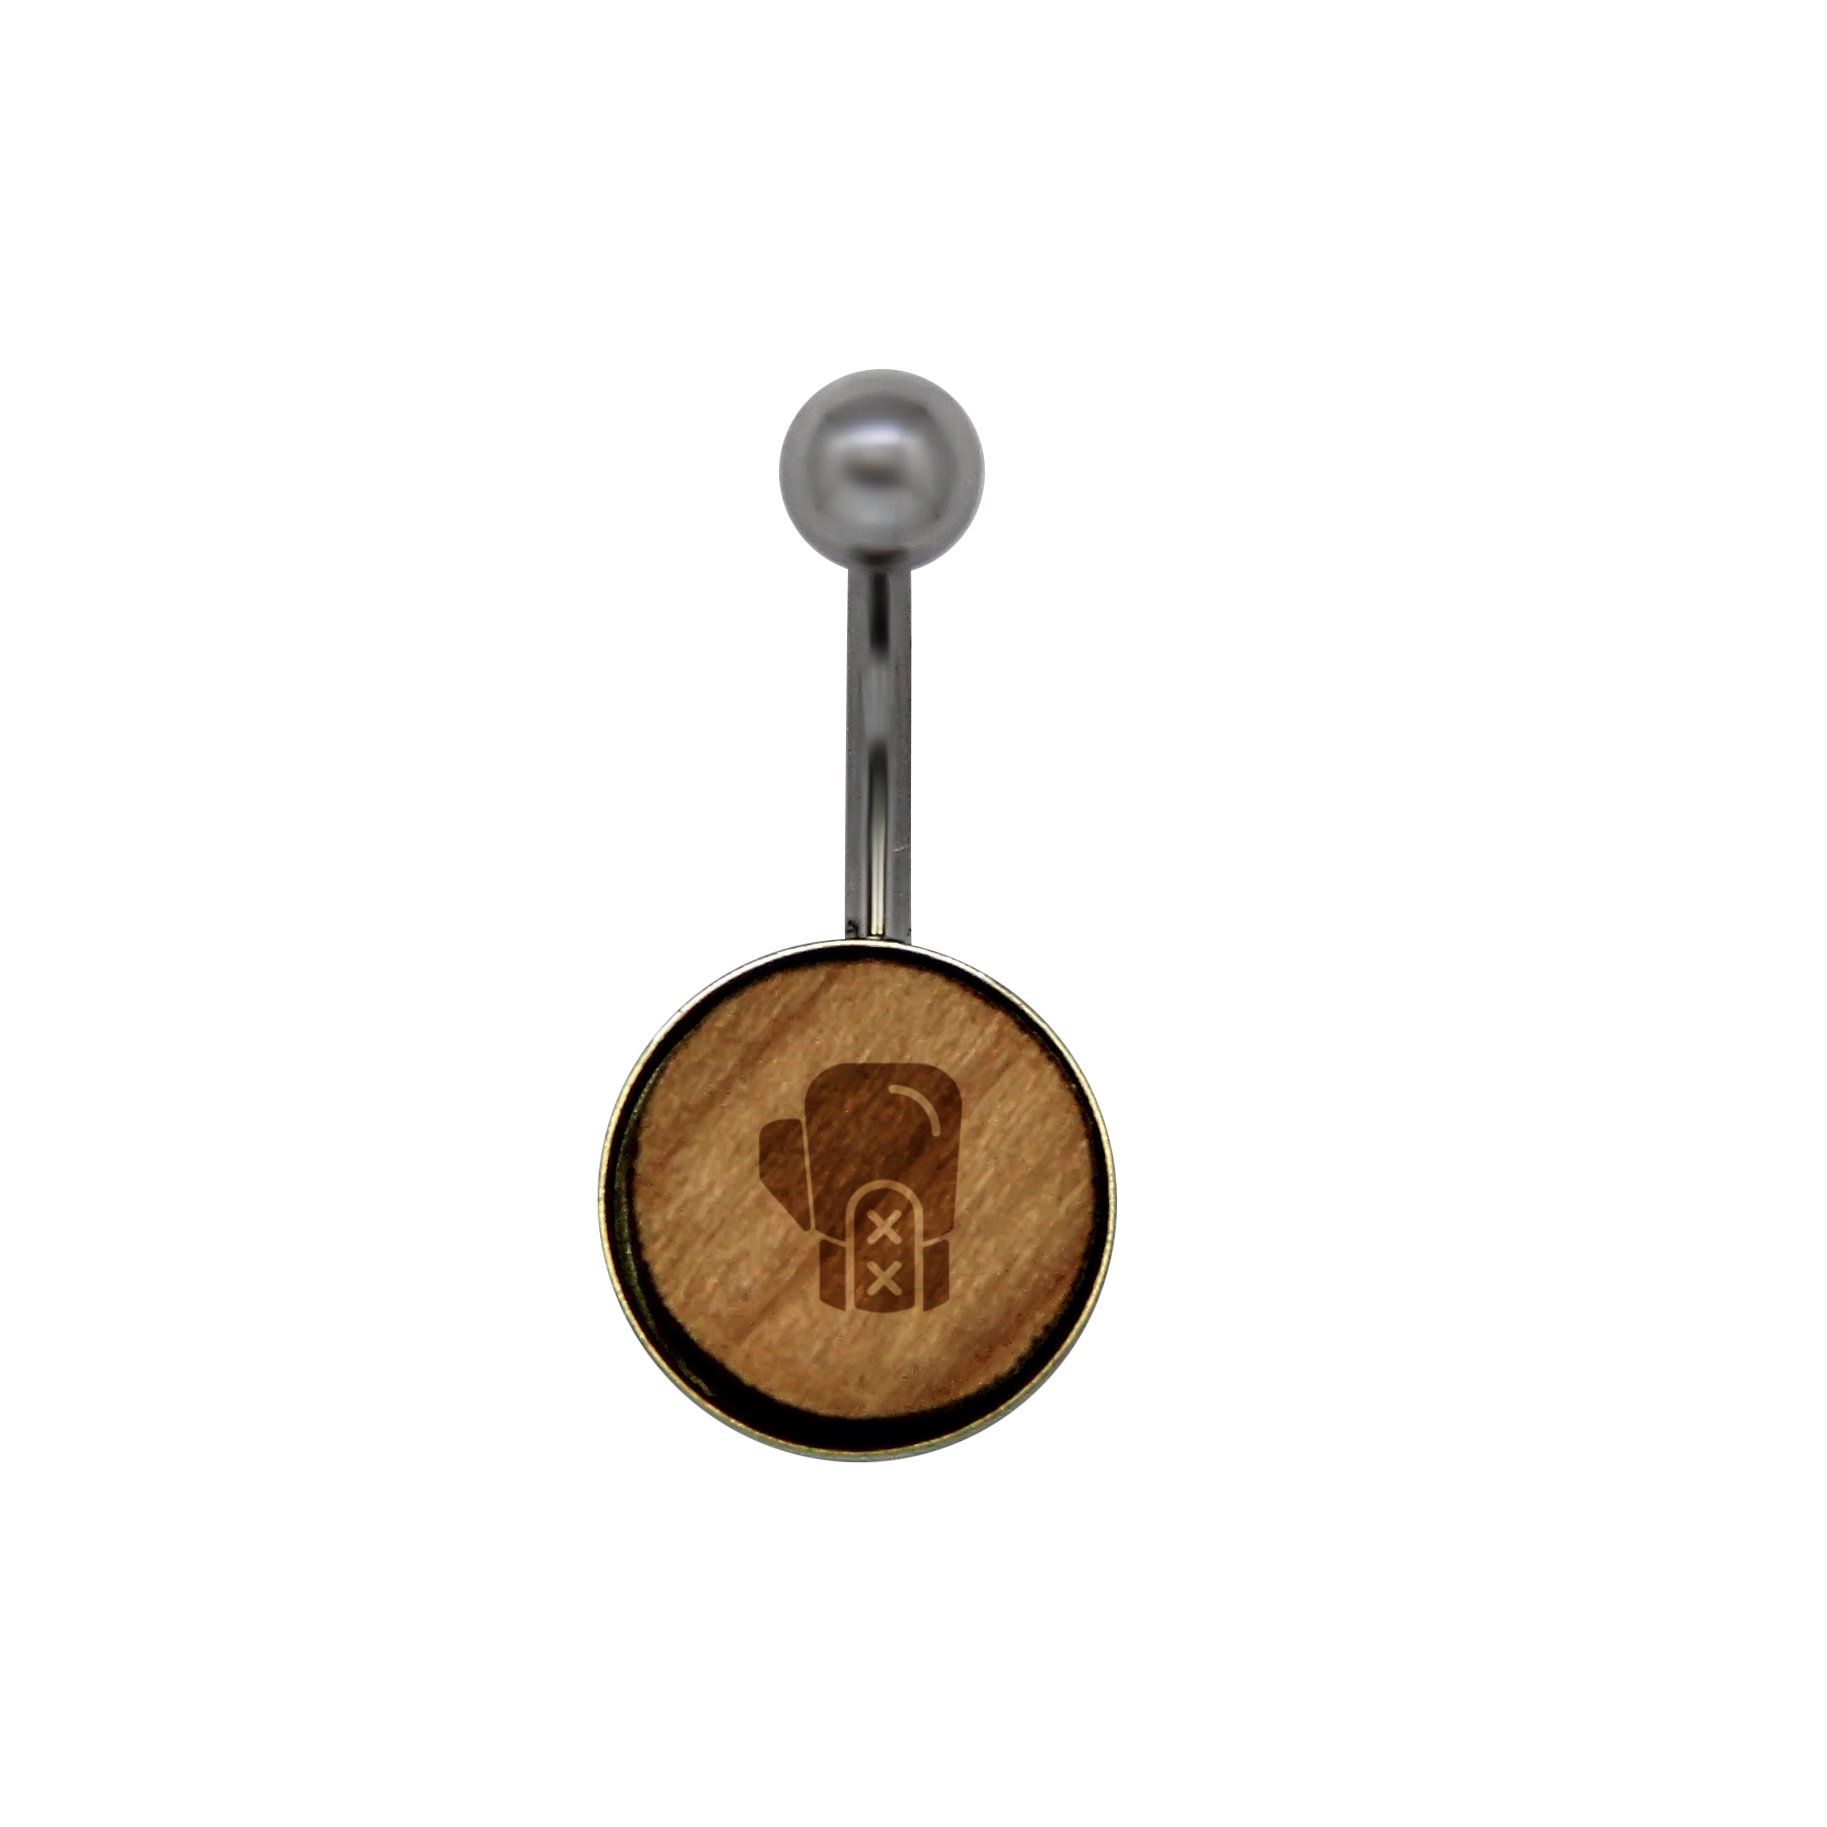 Boxing Glove Surgical Stainless Steel Belly Button Rings - Size 14 Gauge Wooden Navel Ring - Rustic Wood Navel Ring With Laser Engraved Design